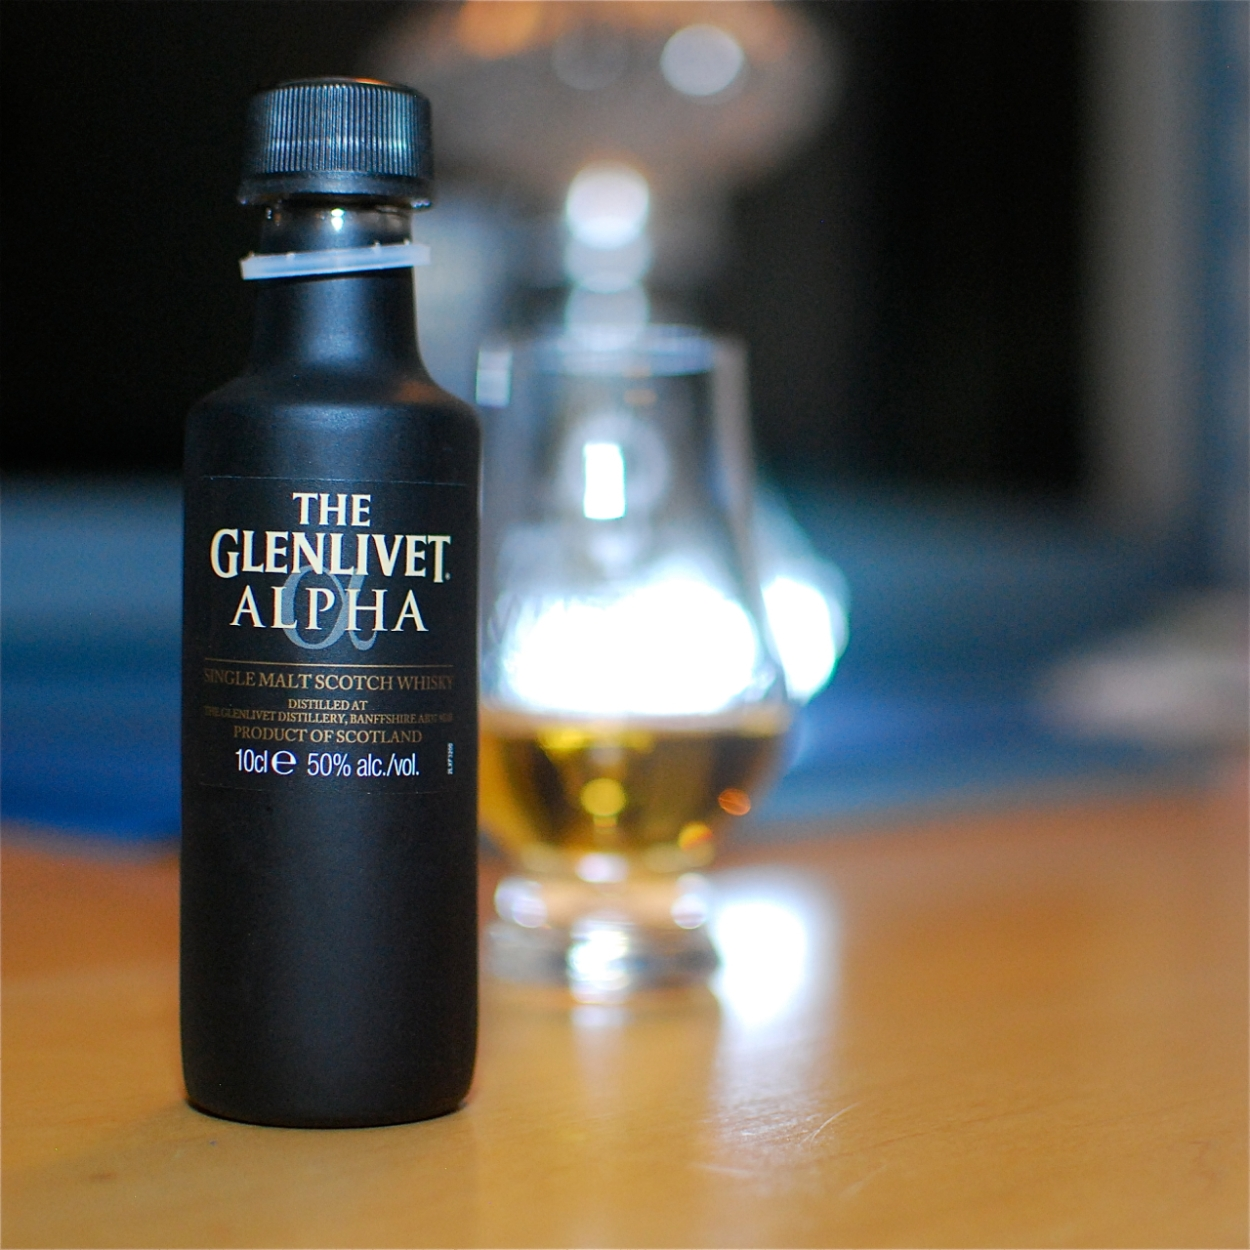 The Glenlivet Alpha